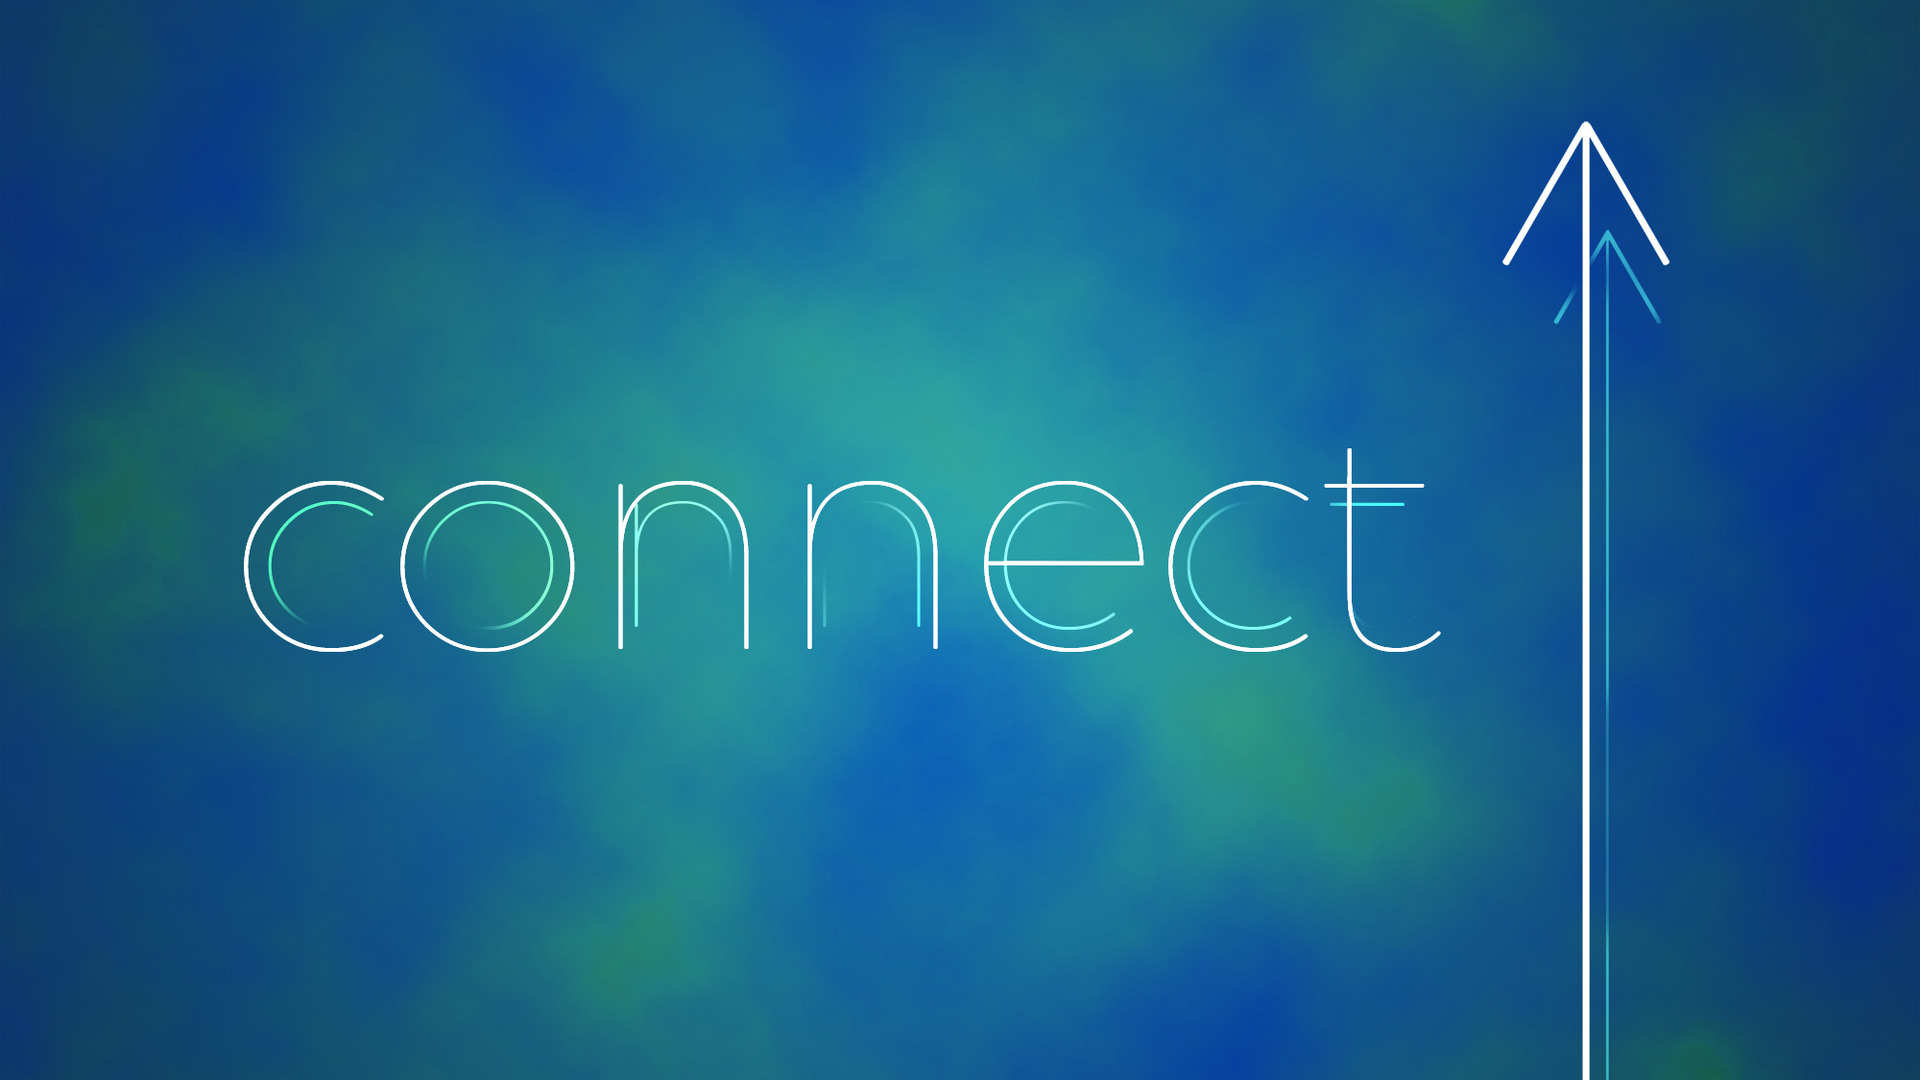 connect-title-2-Wide 16x9.jpg